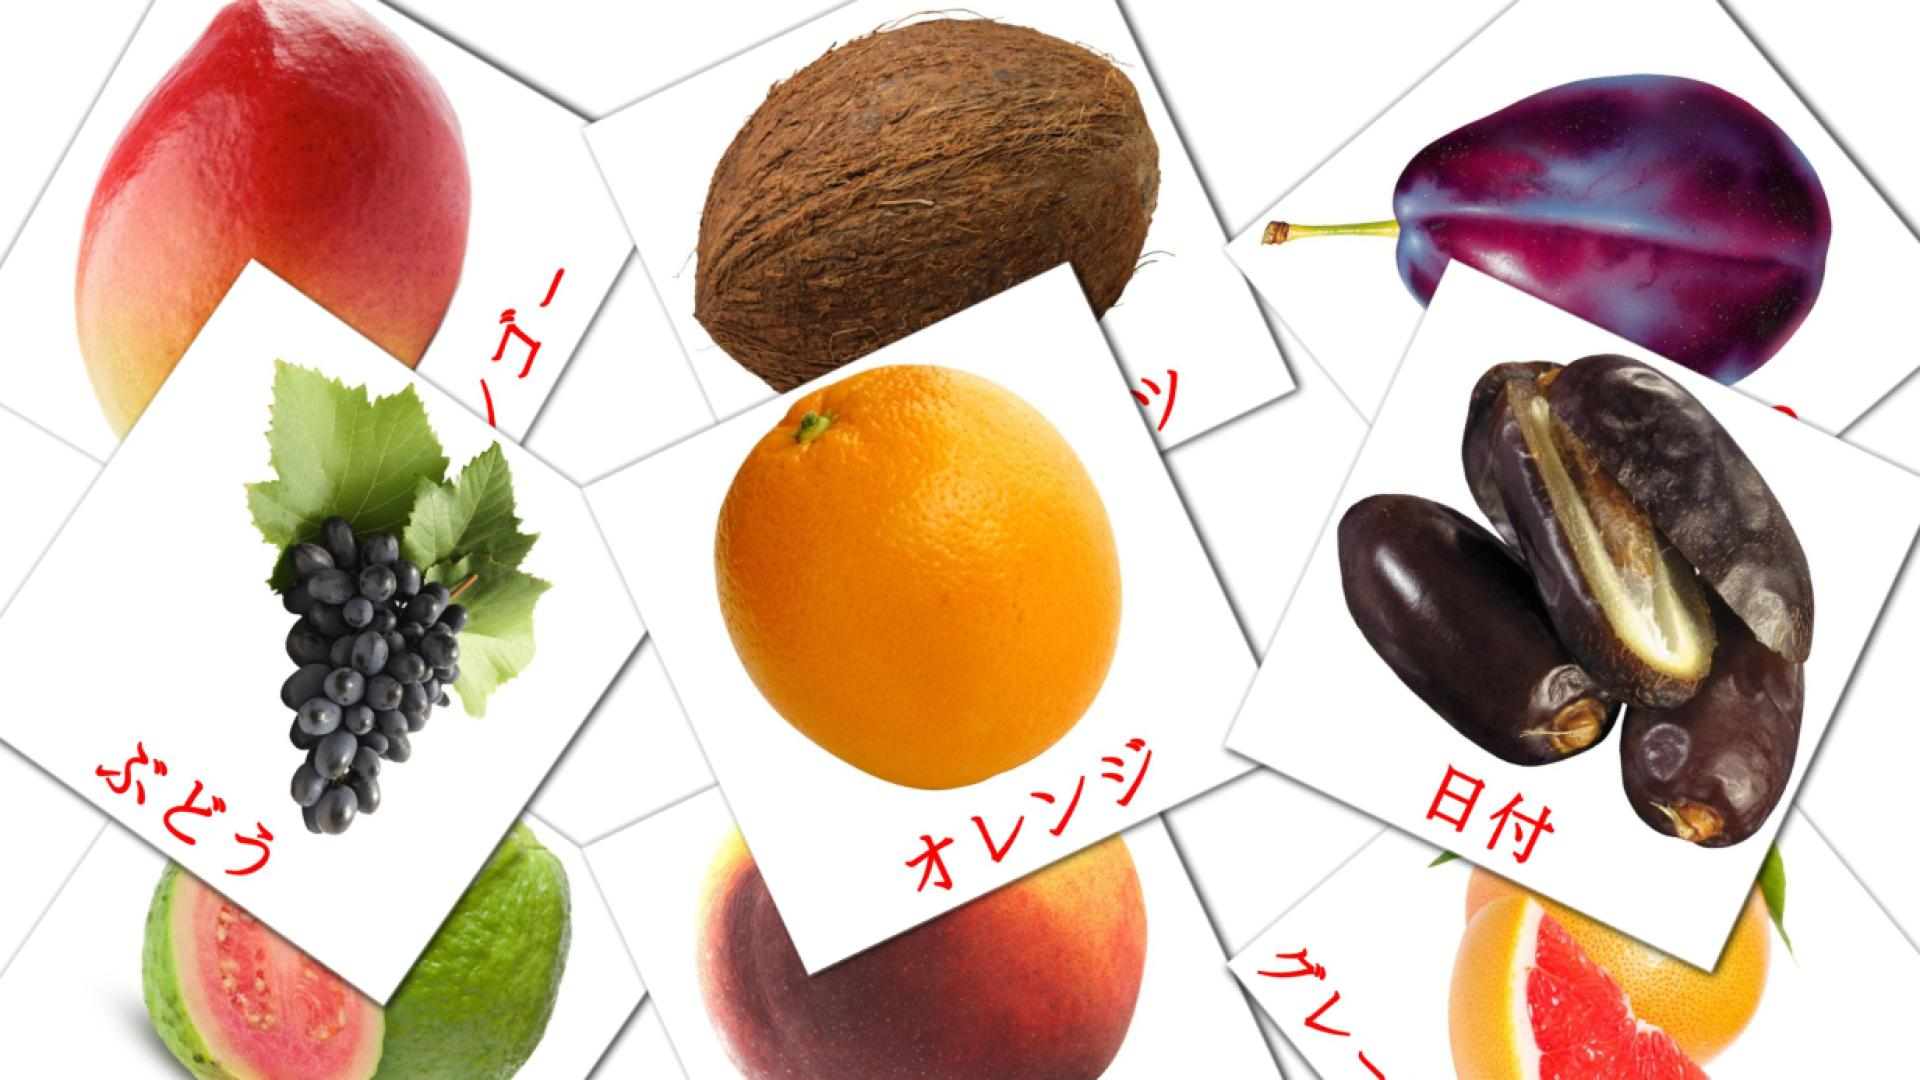 Fruits flashcards